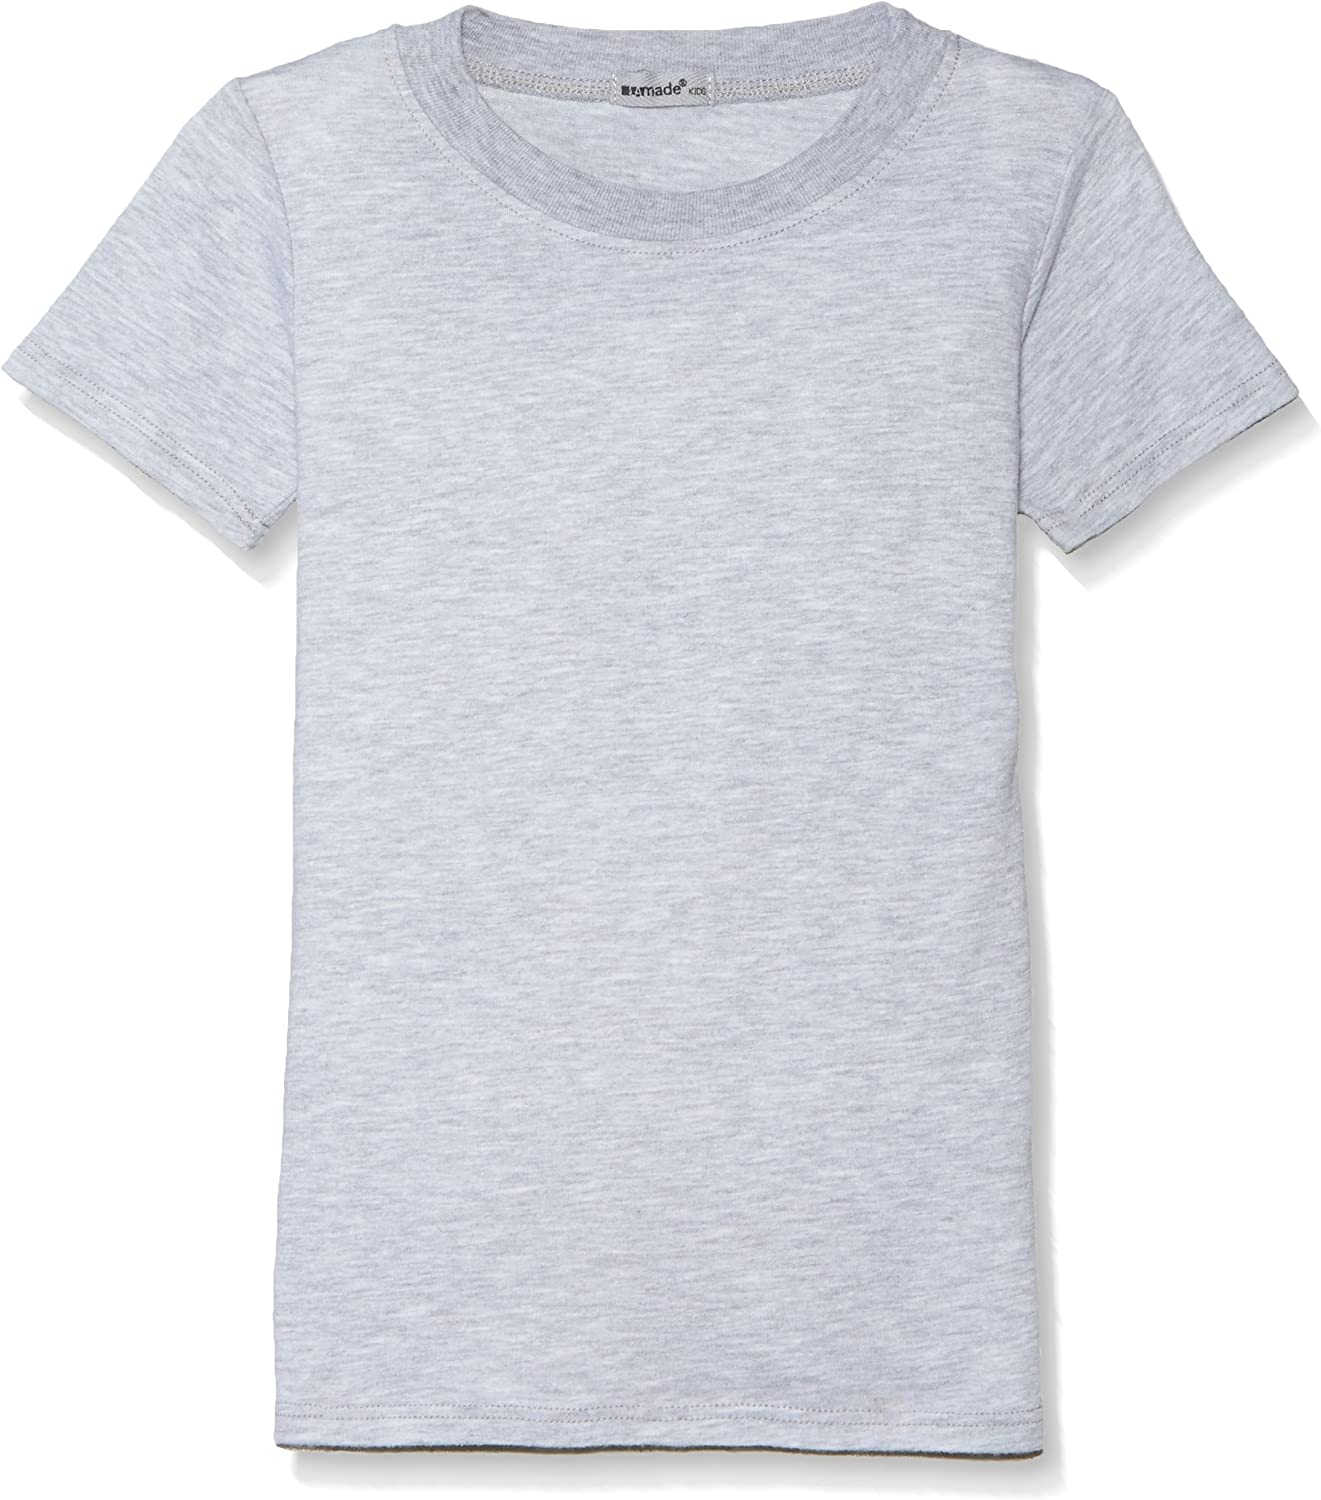 LAmade Girls Basic Tee